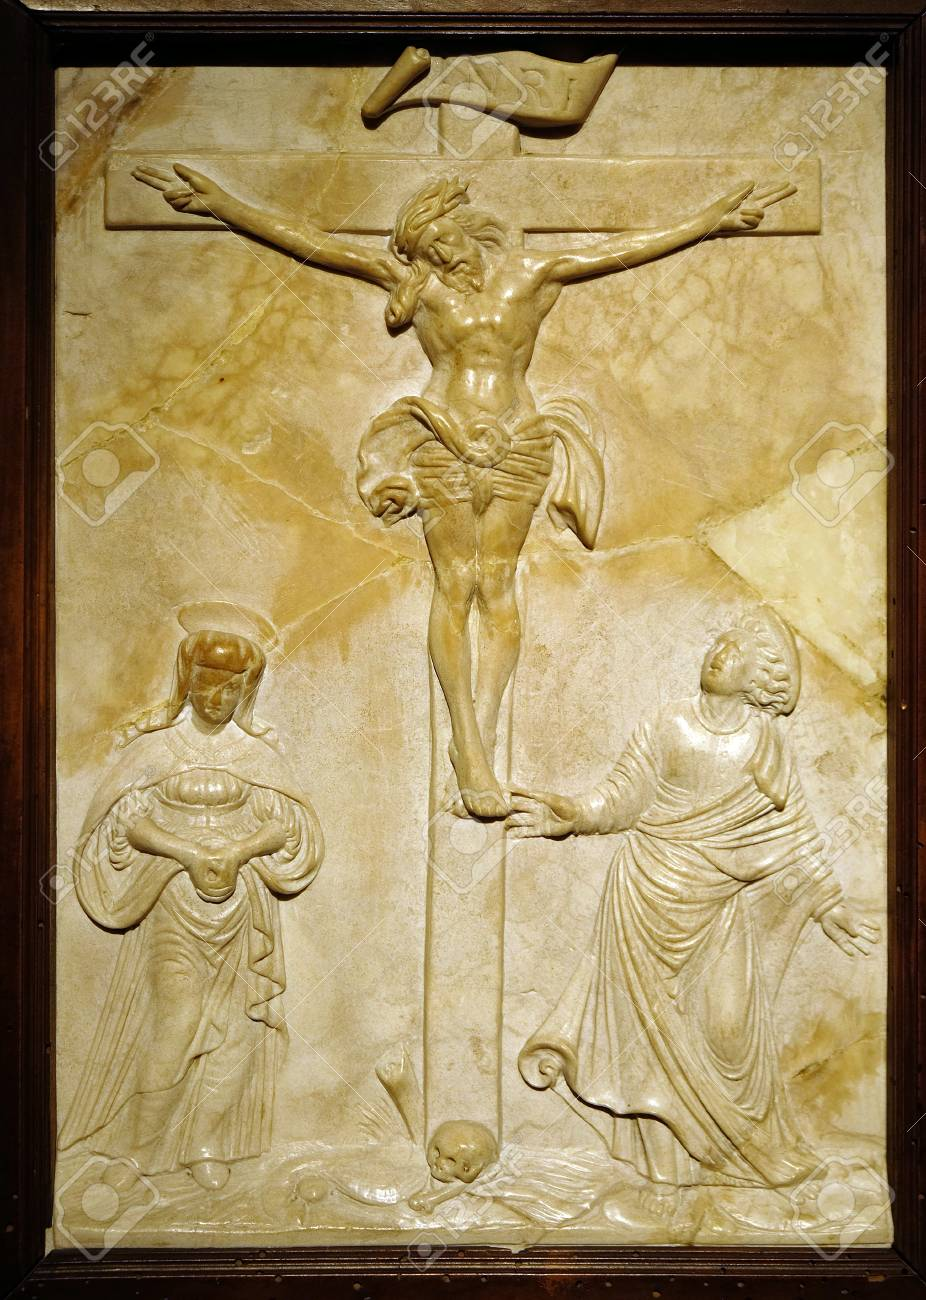 Crucifixion with Mary and Saint John by Sebastian Loscher, marble relief, 16 century, the Passion in Art from Mimara Museum in Zagreb, Croatia - 115893194